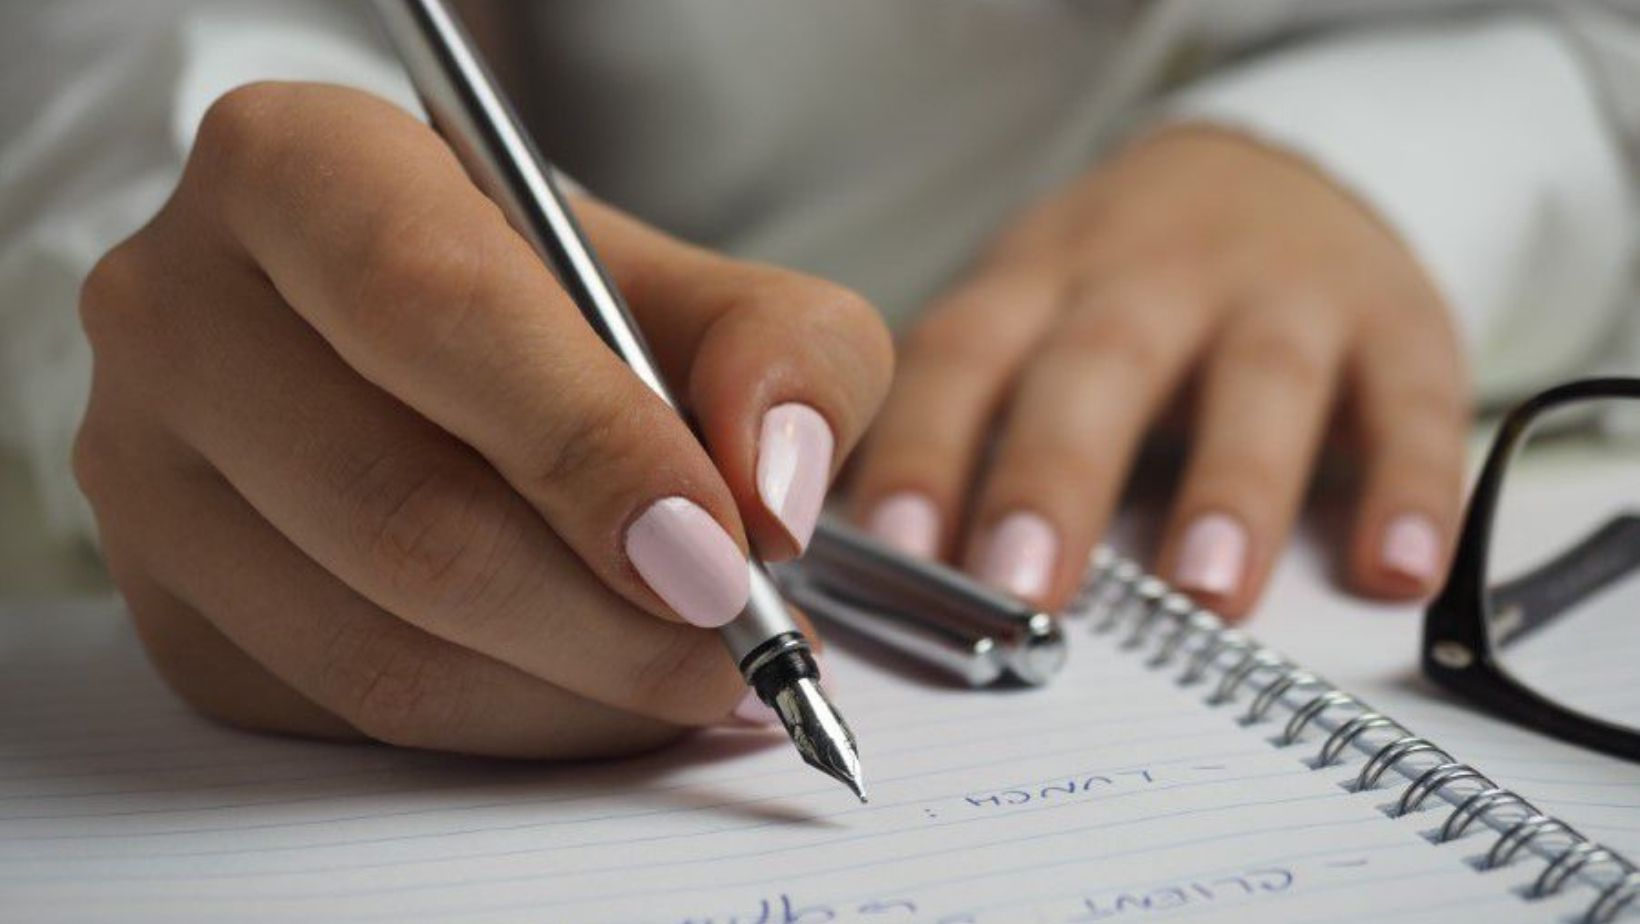 Writing down goals can help you stay on track